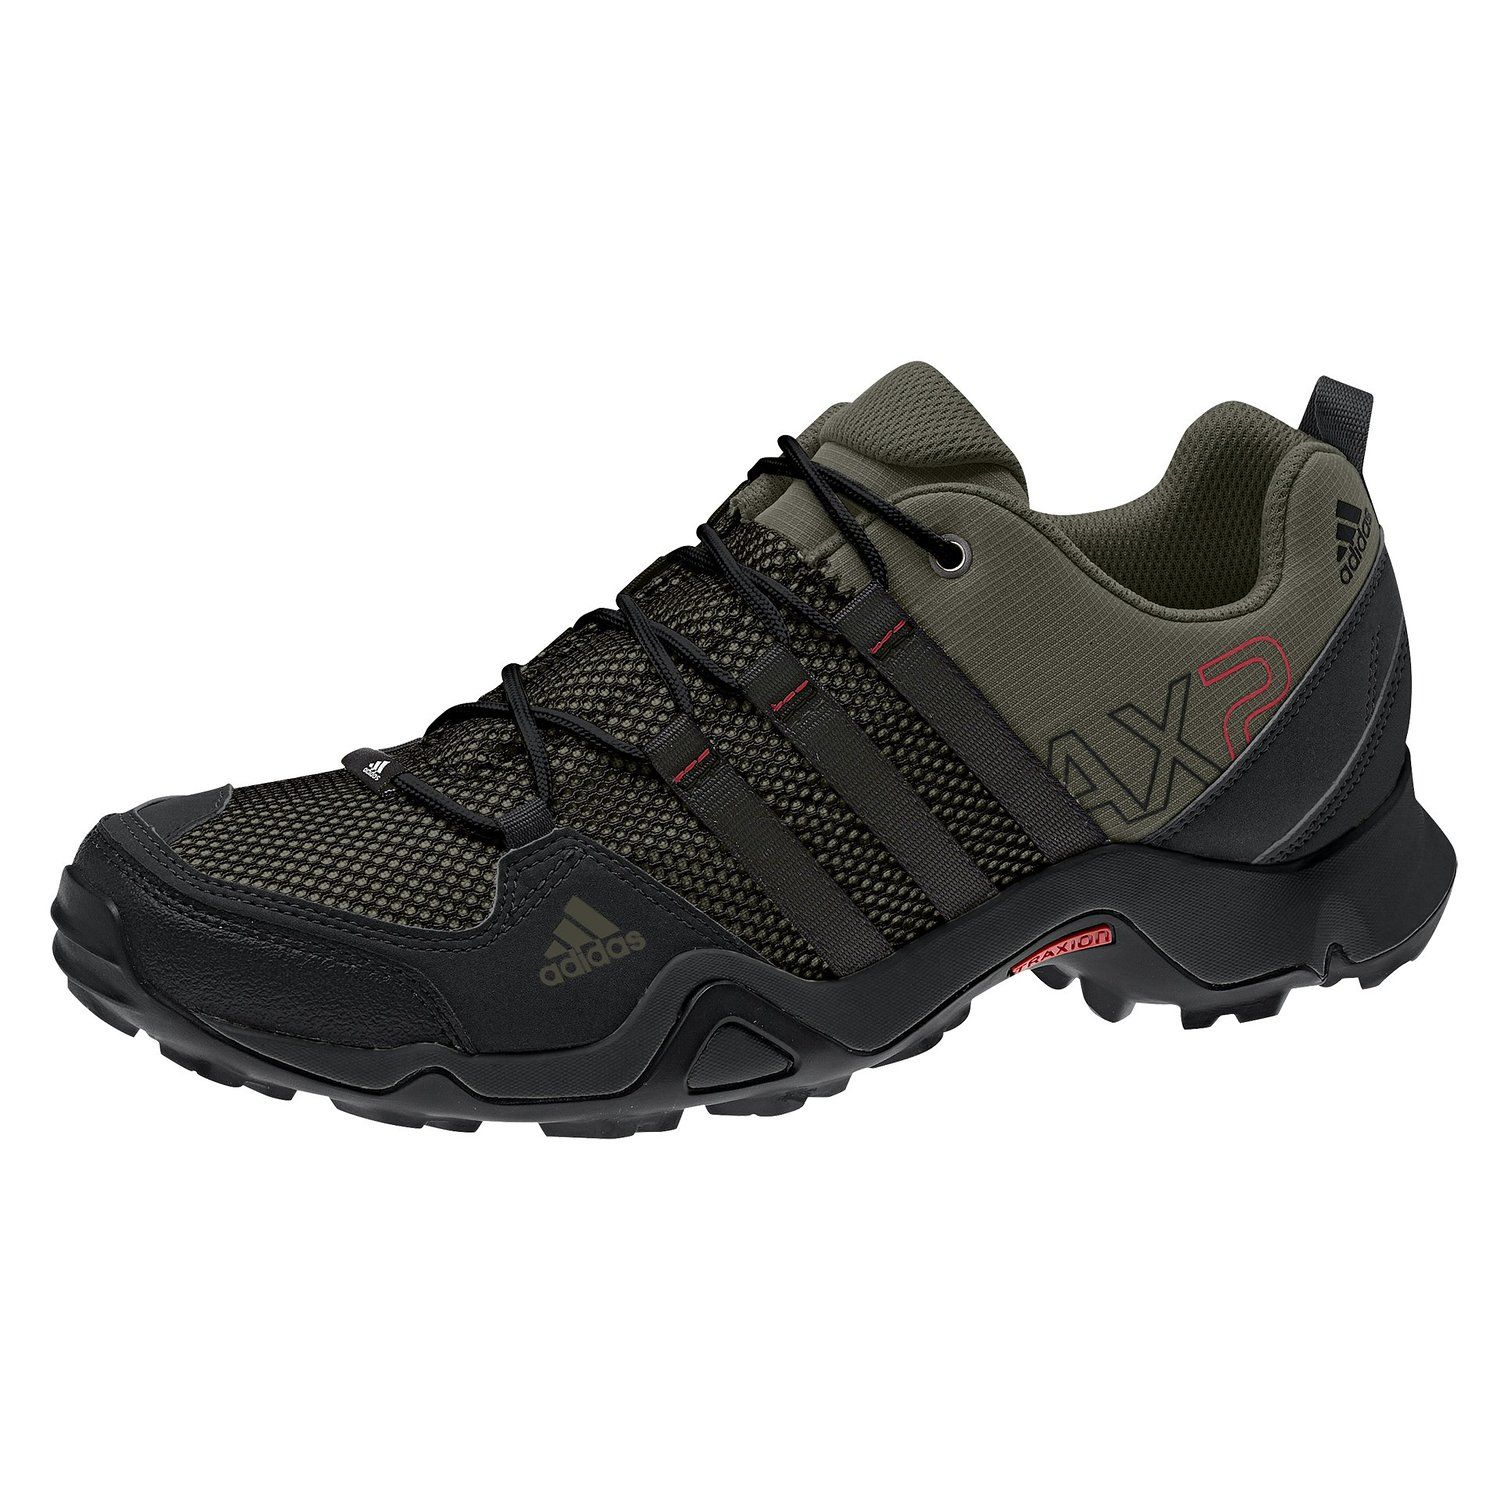 ce25bcdd151 Amazon.com  adidas Outdoor AX2 Hiking Shoe - Men s  Shoes